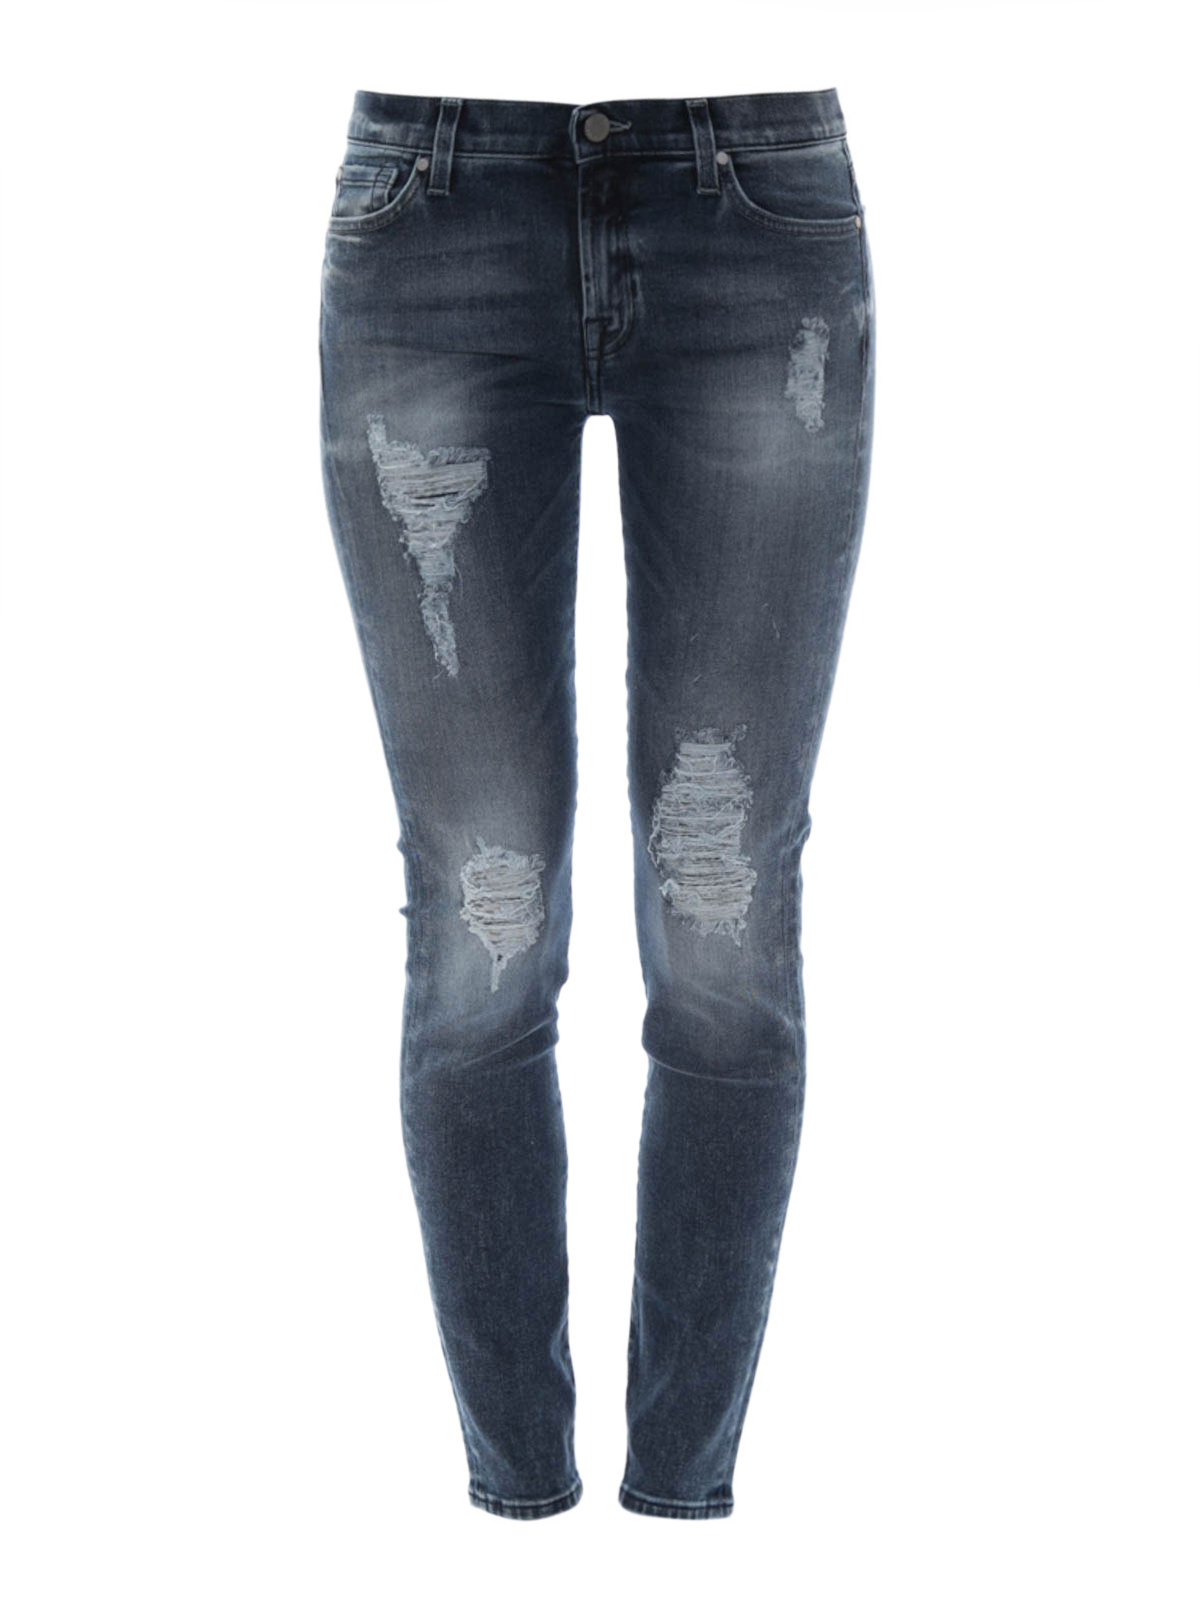 Find great deals on eBay for skinny jeans size Shop with confidence.